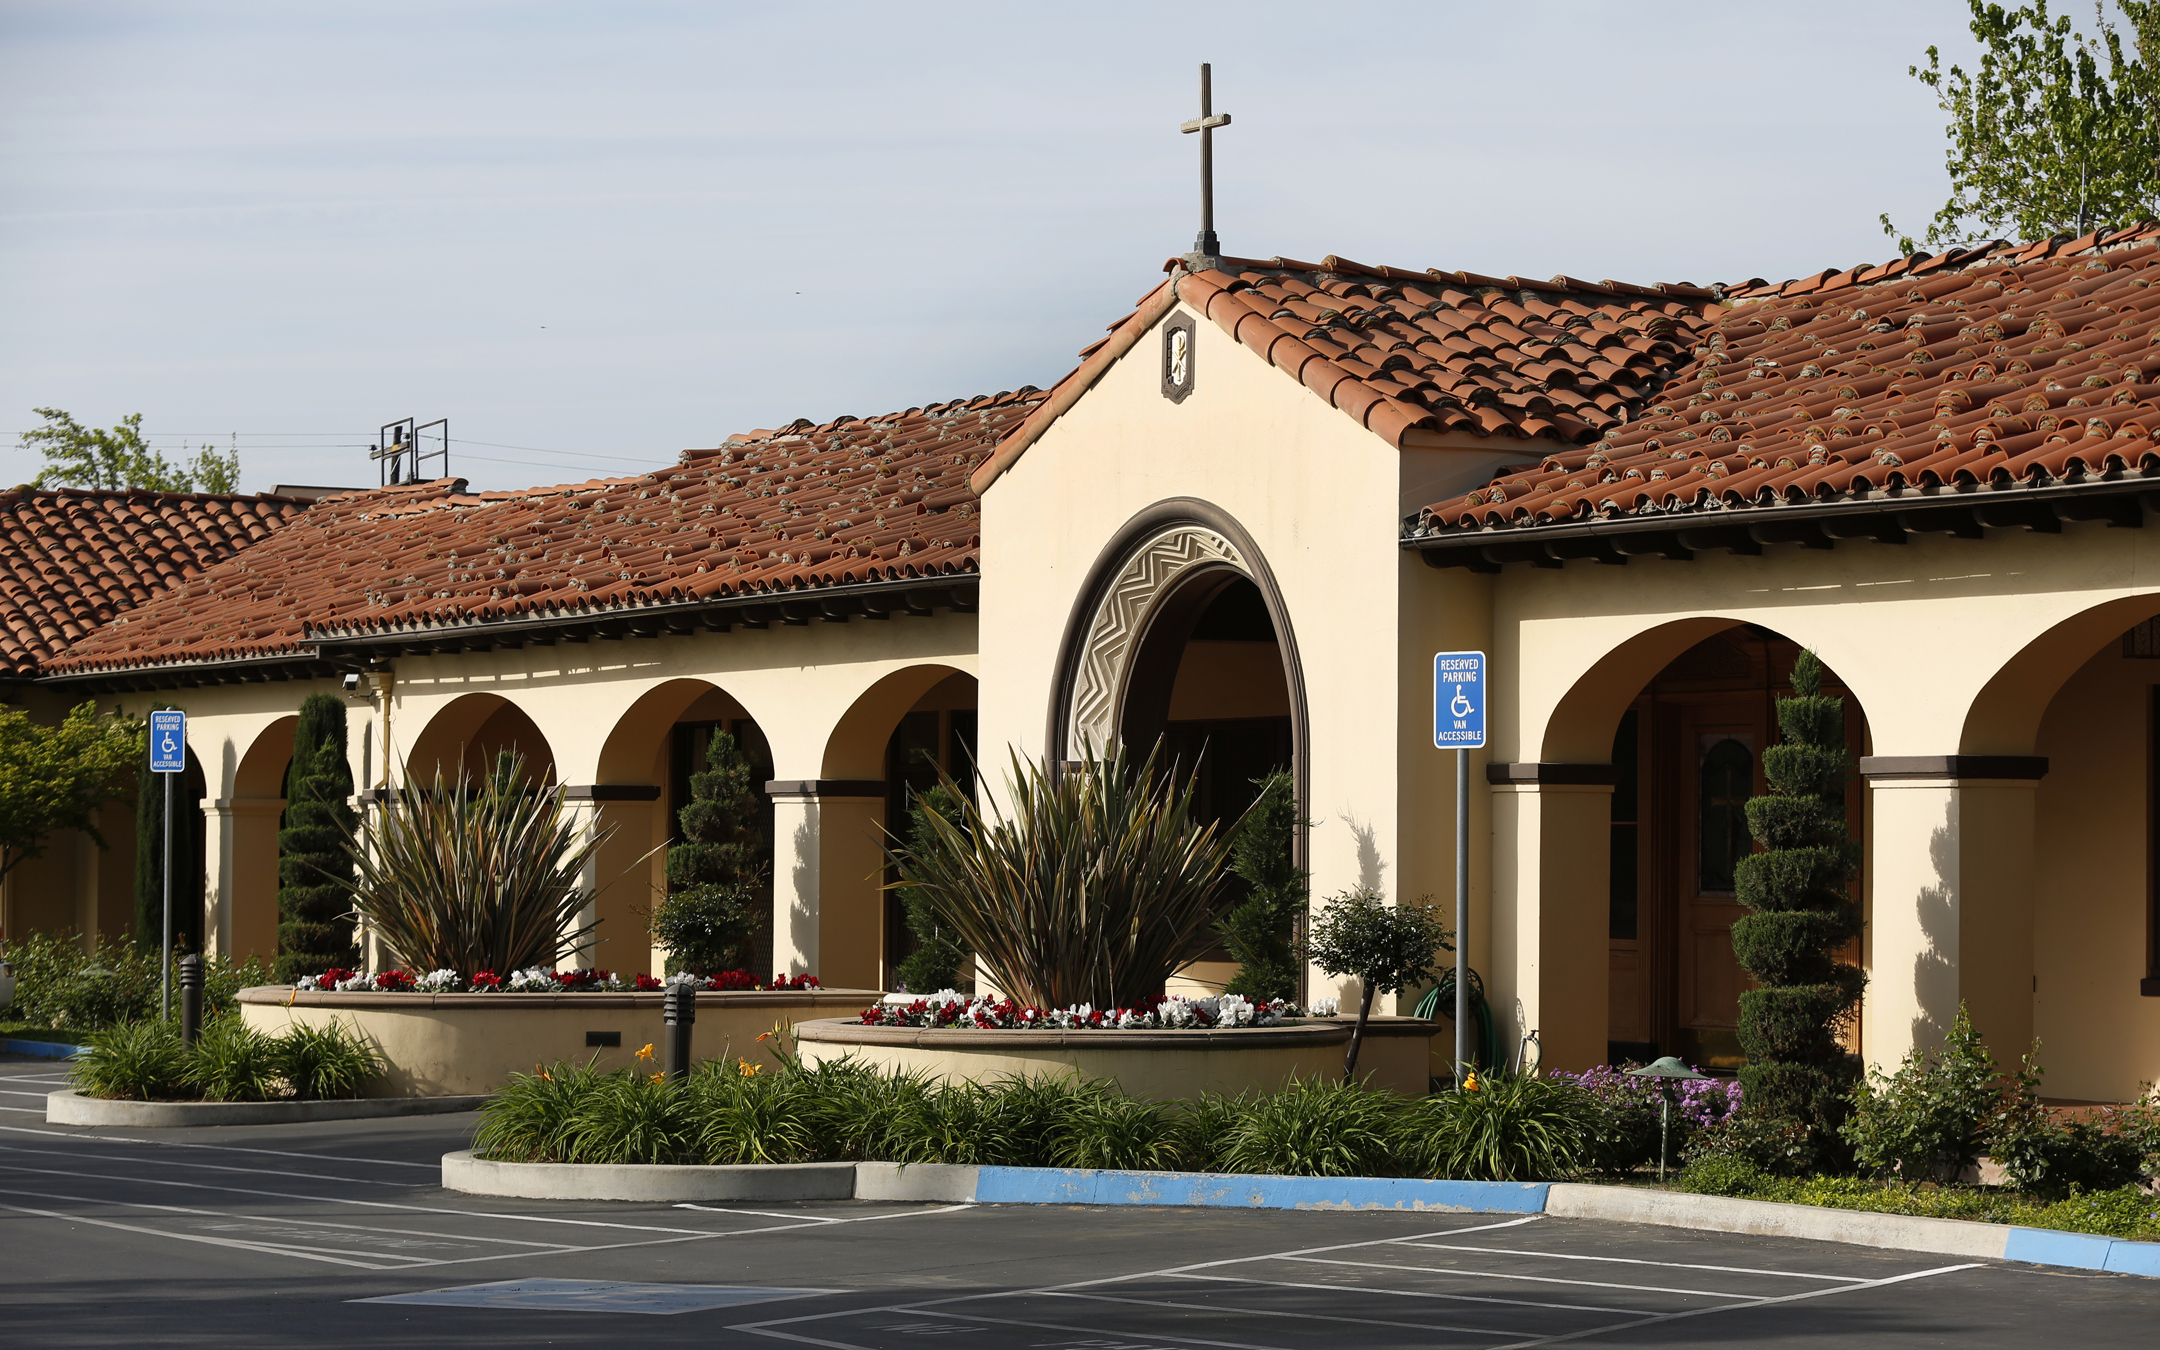 Entrance to House Fresno Assisted Living Home with Spanish architecture, tile roof, porticoes, and lush garden greenery.